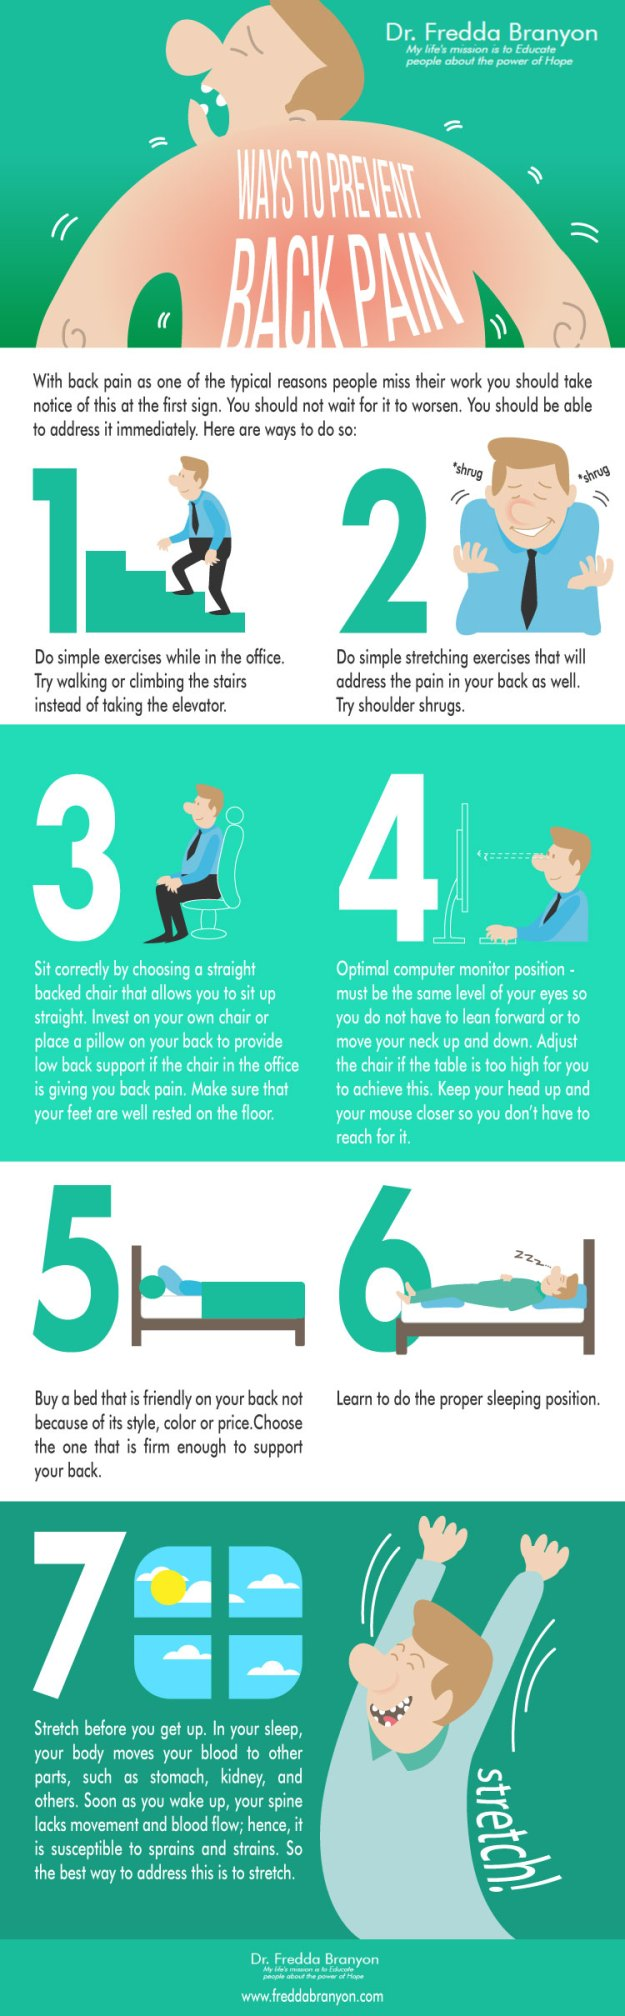 fredda branyon - ways to prevent backpain